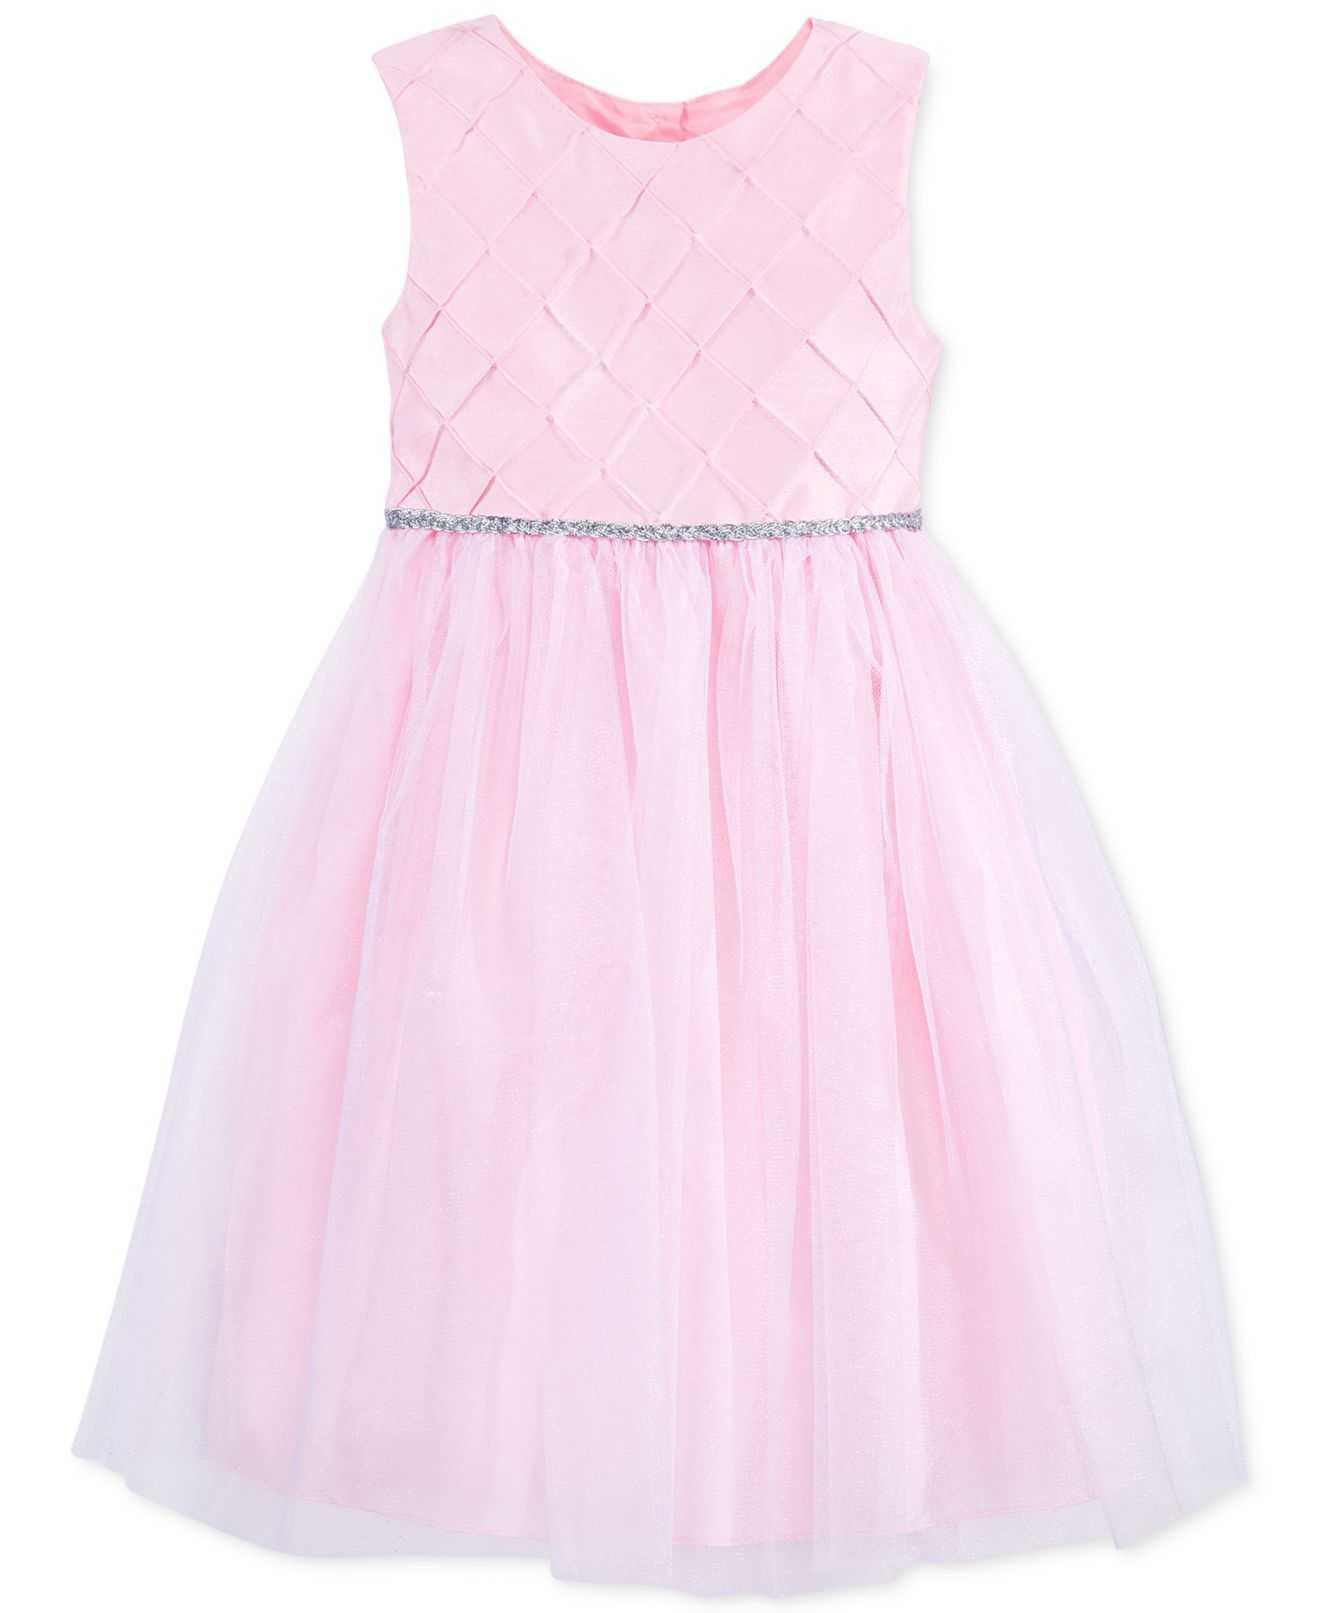 Cocktail dresses for girls 7 16